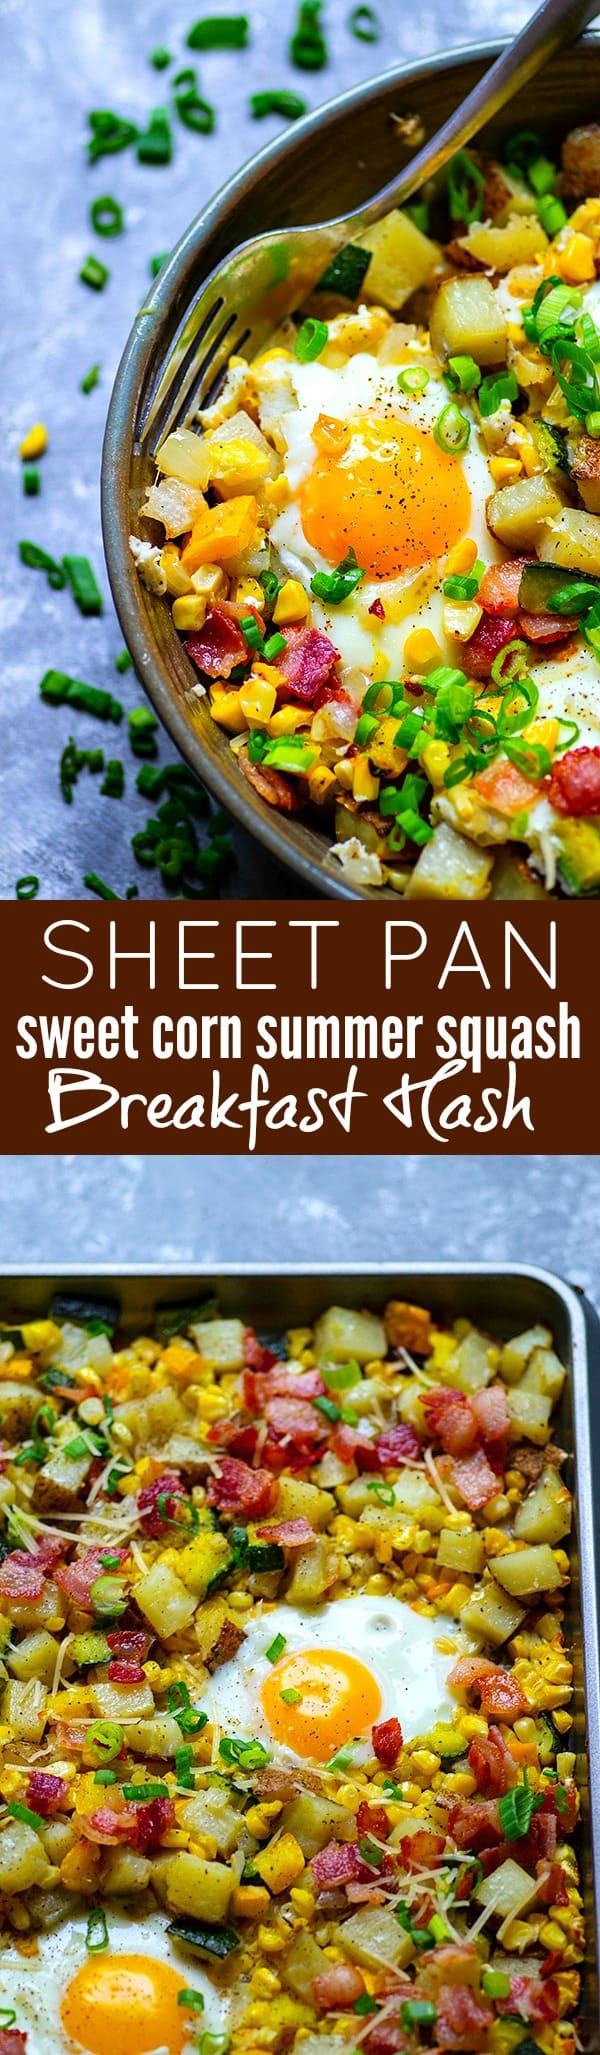 Only ONE sheet pan required for this summery loaded sweet corn summer squash breakfast hash! Packed with tender veggies, crisp bacon, and beautiful sunny-side up eggs.